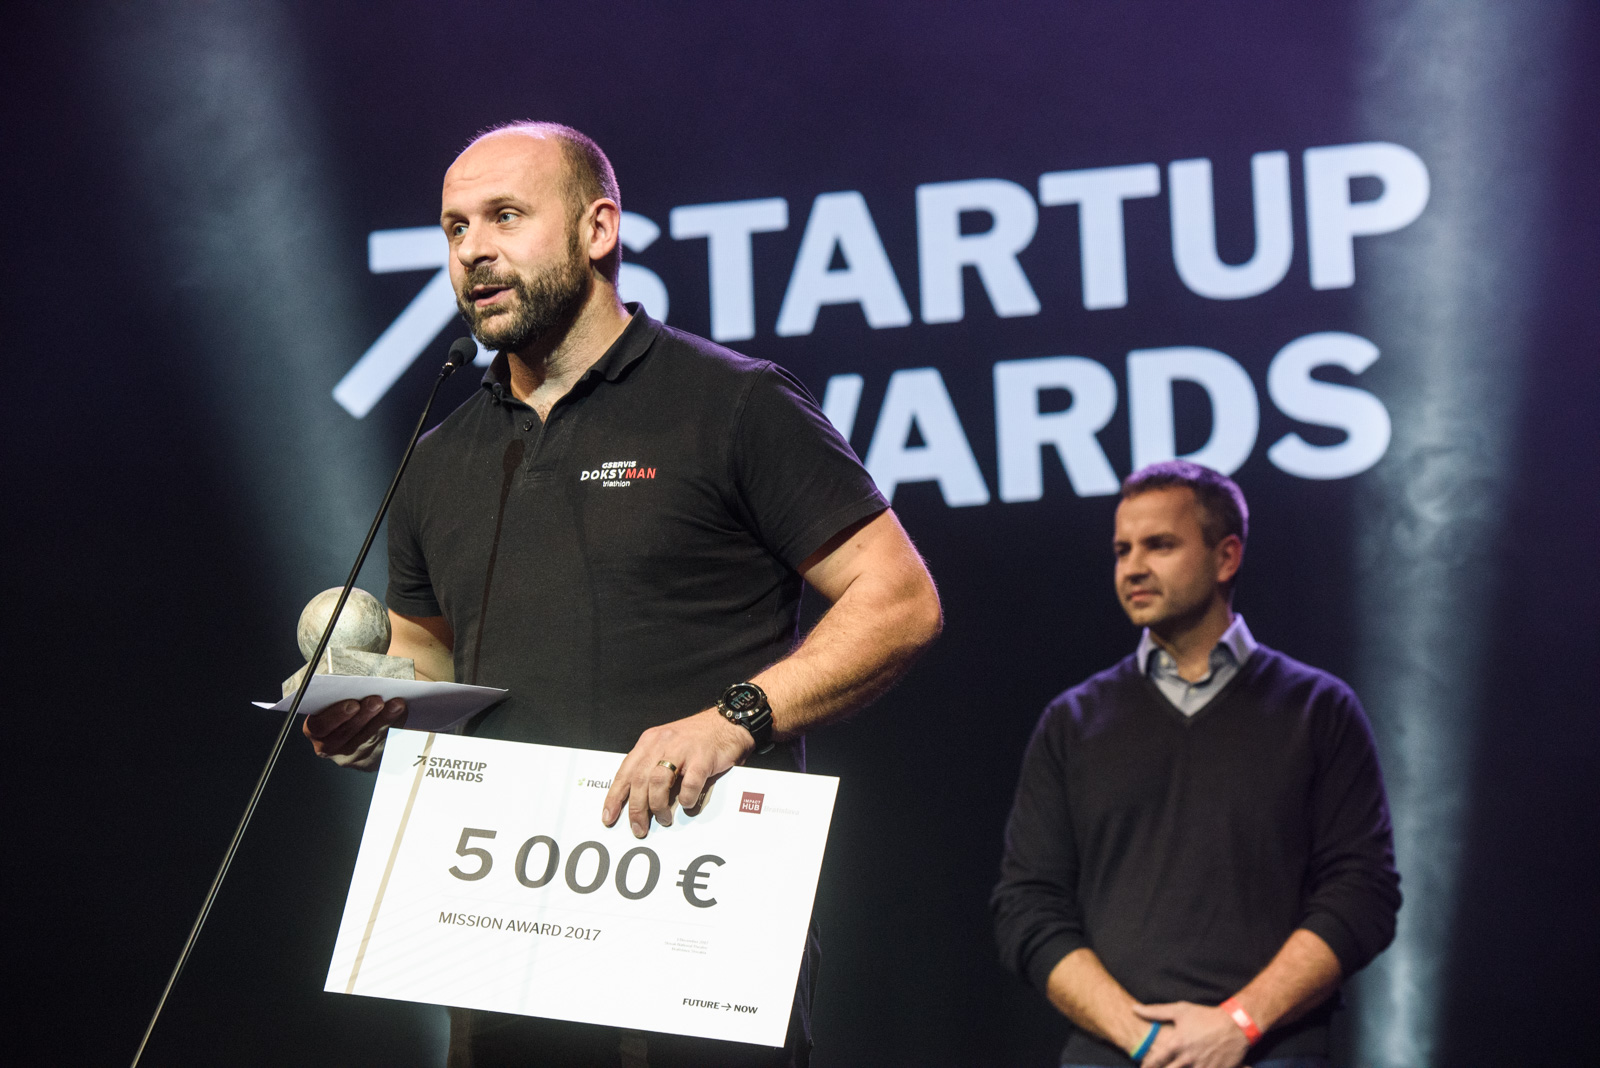 Sensoneo, the winner of Mission Awards at the Startup Awards 2017